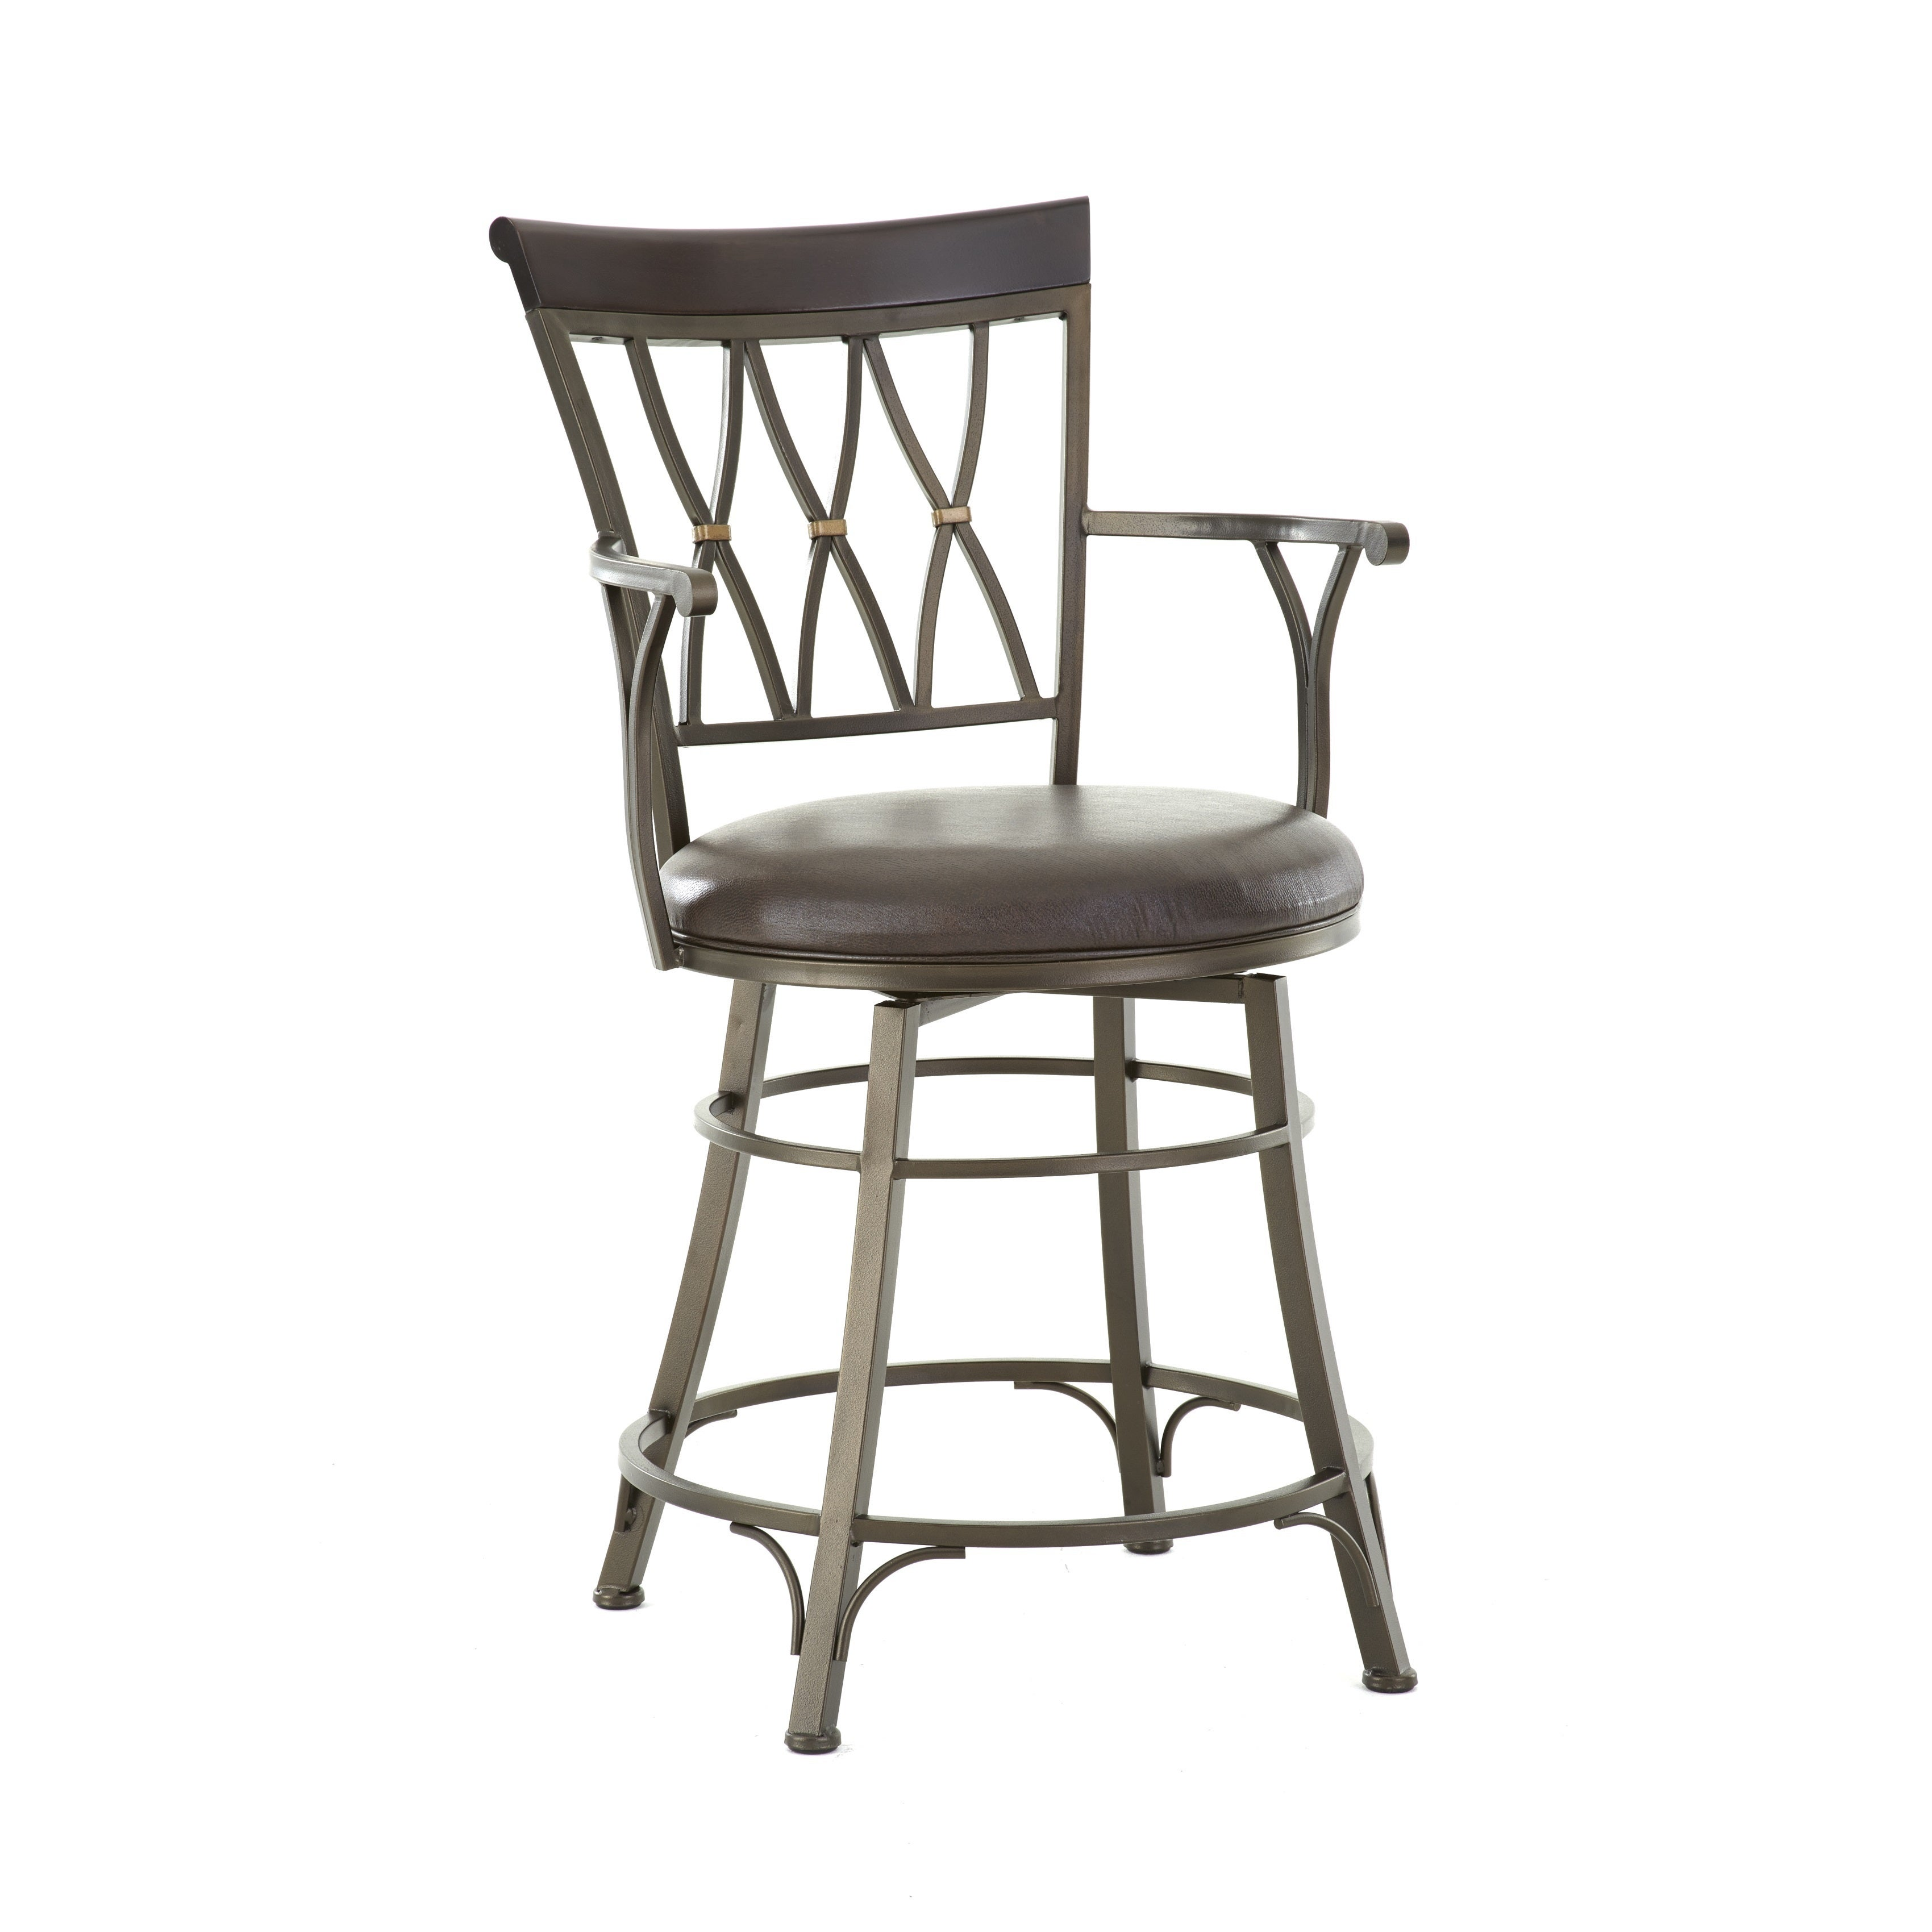 Astonishing Bella 30 Inch Jumbo Metal Swivel Stool With Arms By Greyson Living Ncnpc Chair Design For Home Ncnpcorg